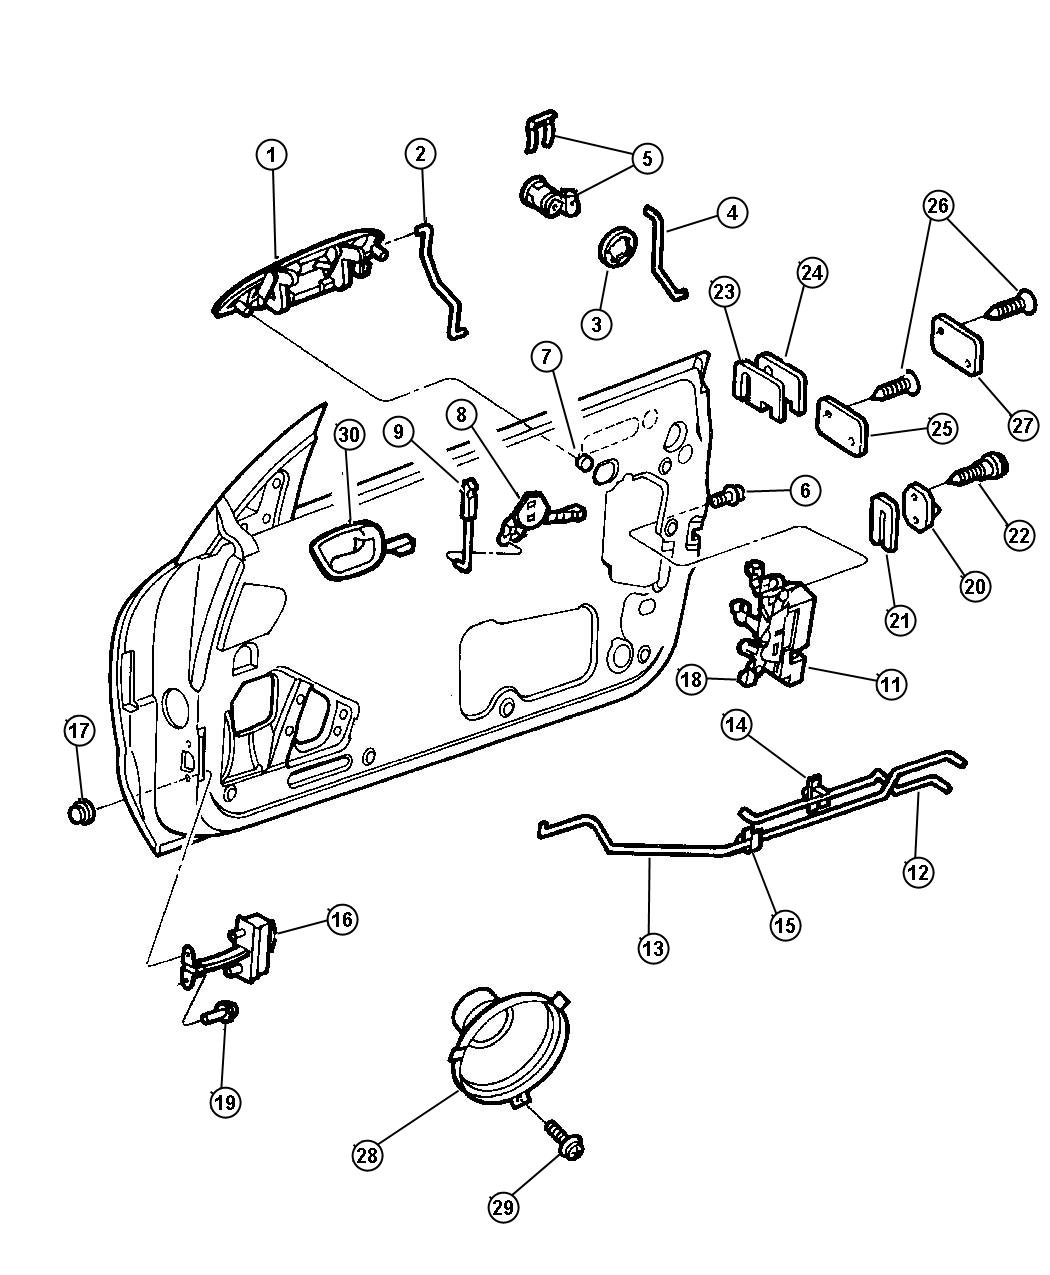 Service manual [1998 Chrysler Sebring How To Remove Window